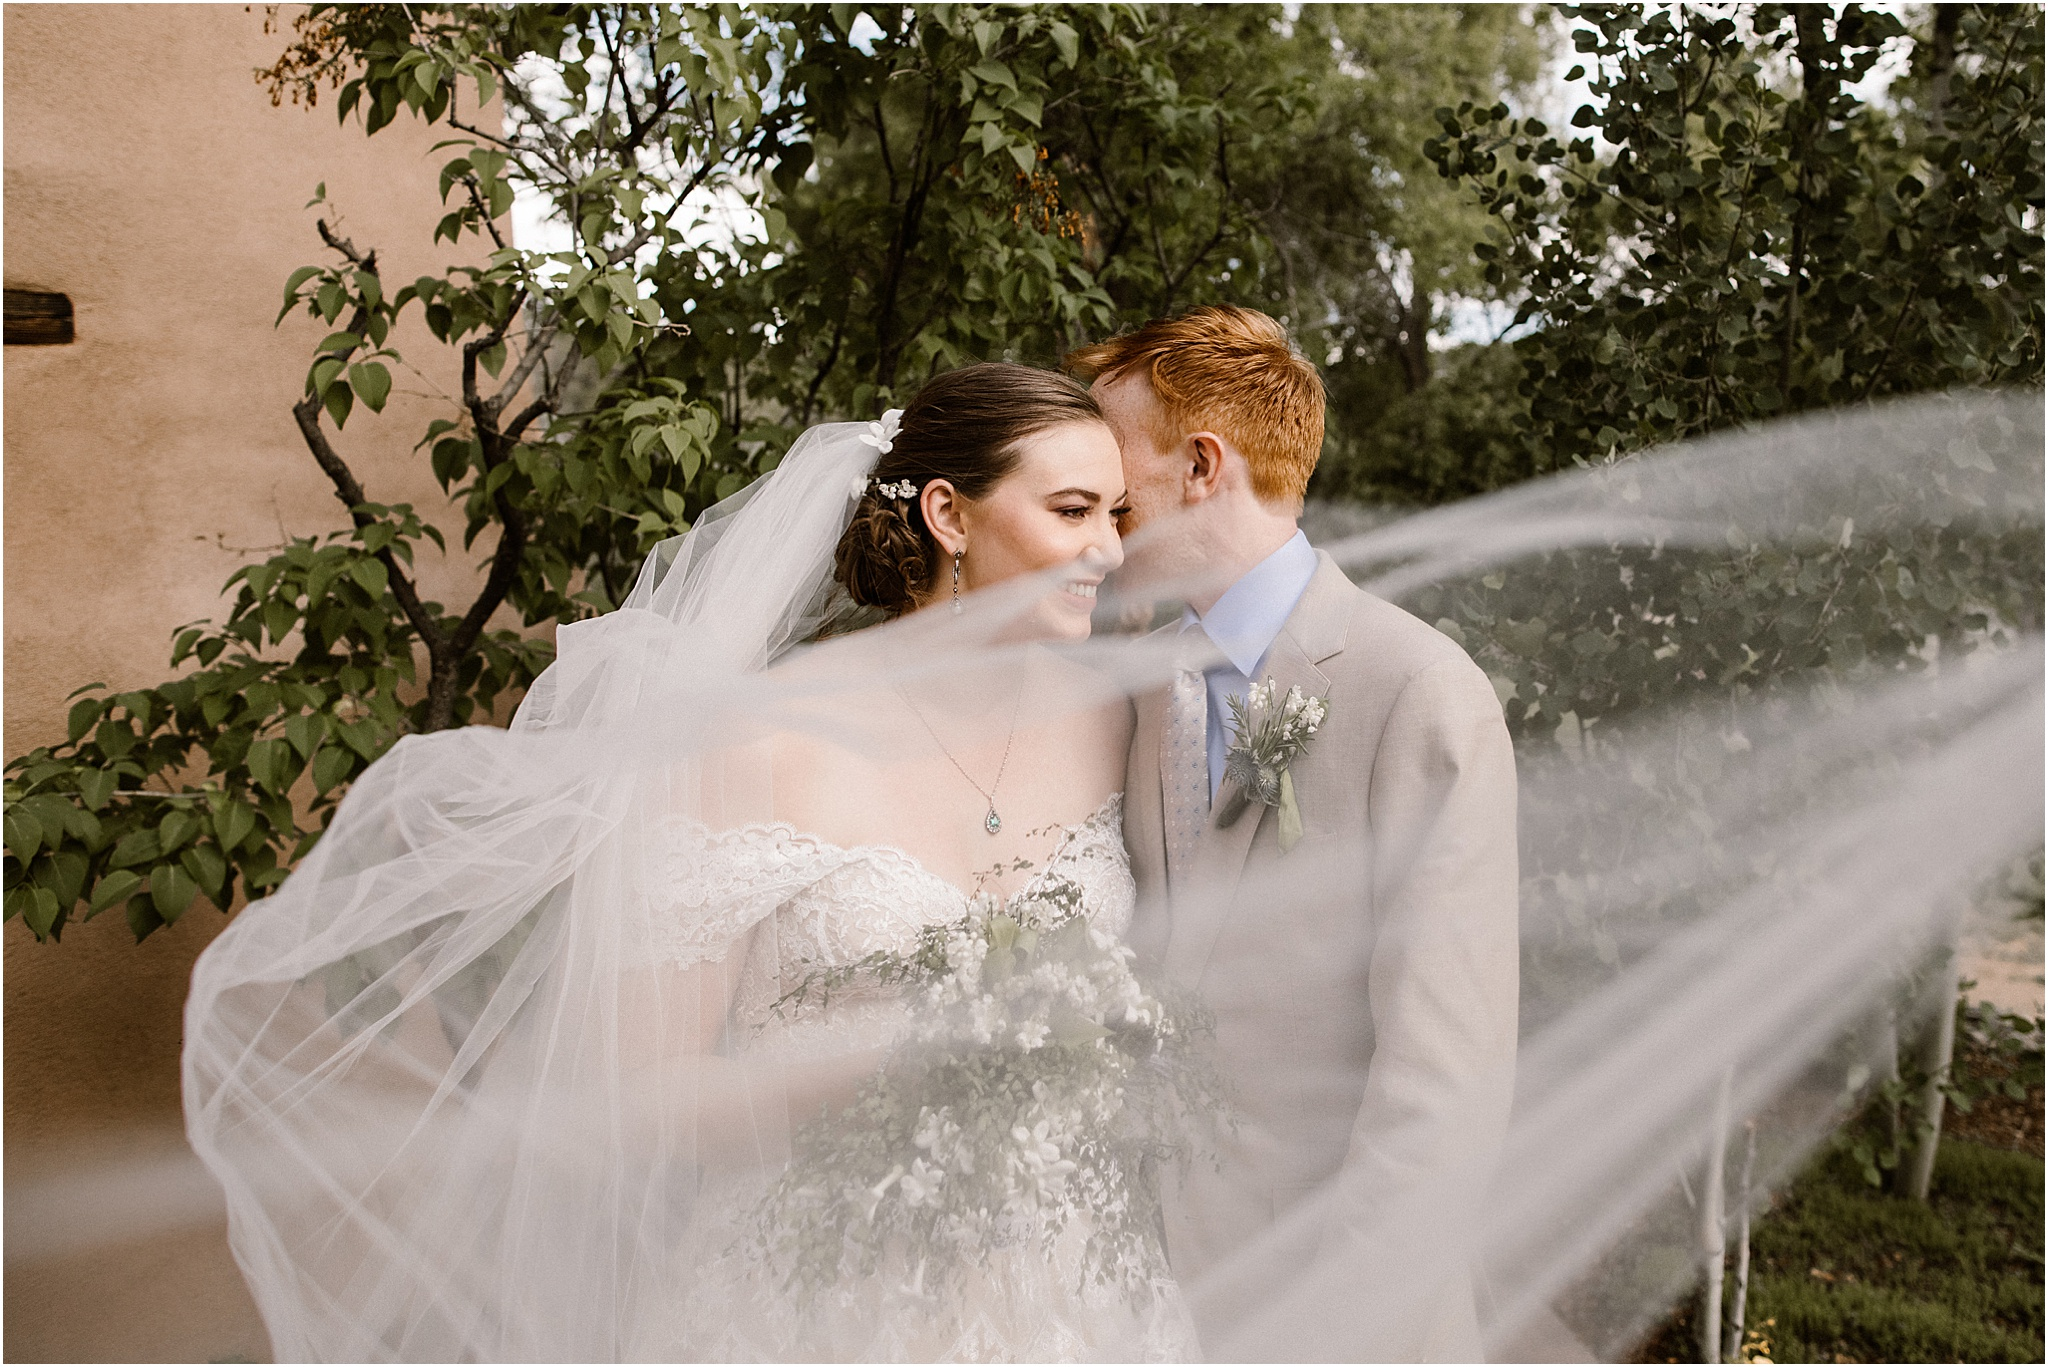 AMELIA_JASON_SANTA FE_ WEDDING_BLUE ROSE PHOTOGRAPHY82